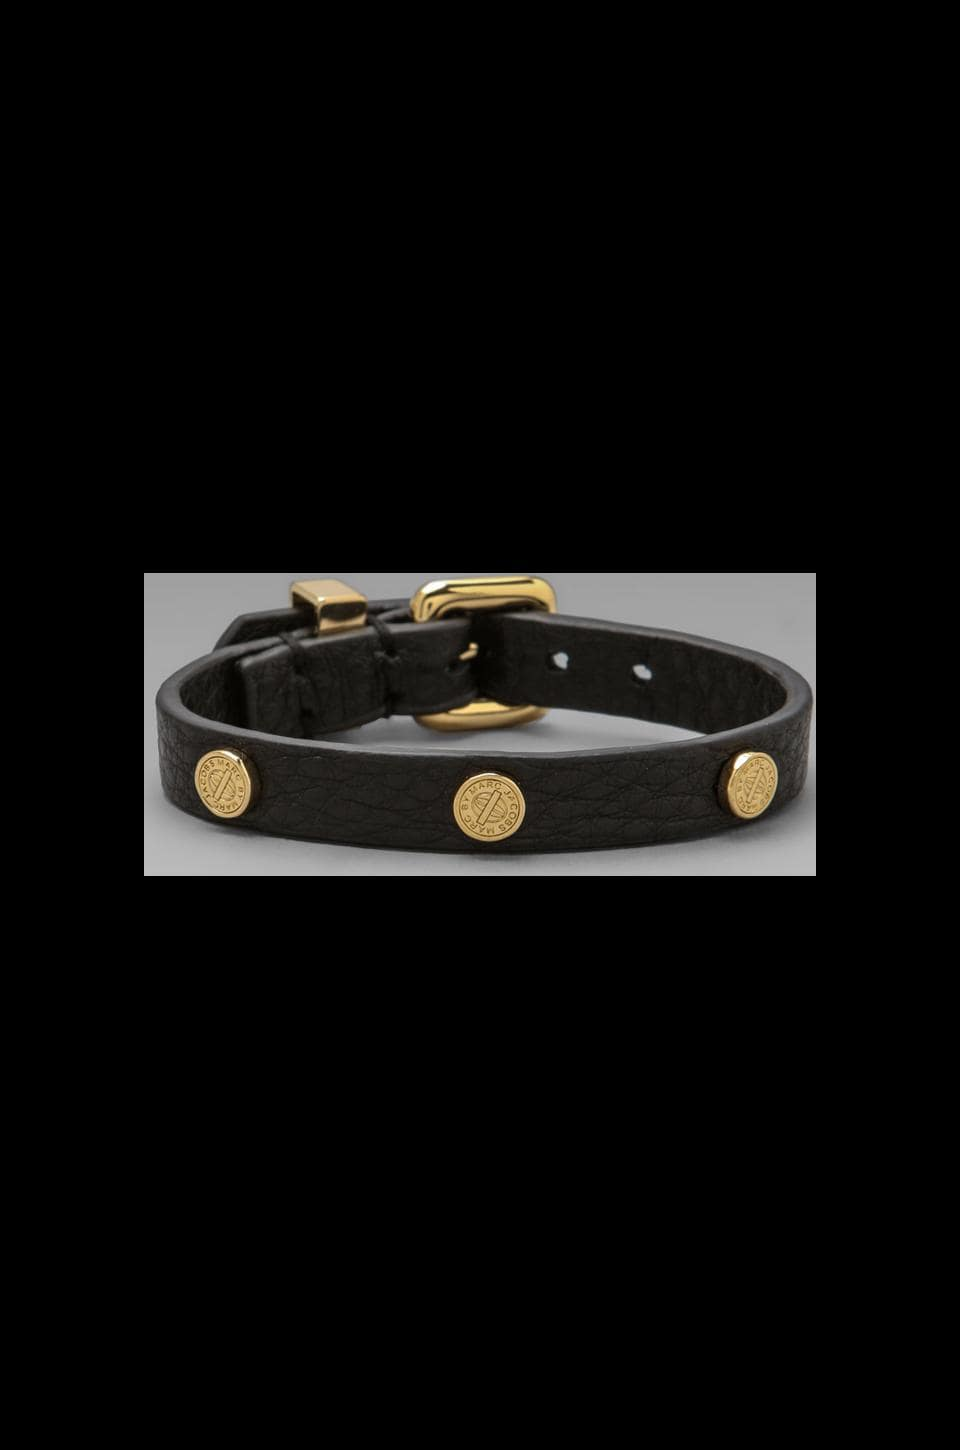 Marc by Marc Jacobs Turnlock Charm Leather Bracelet in Black